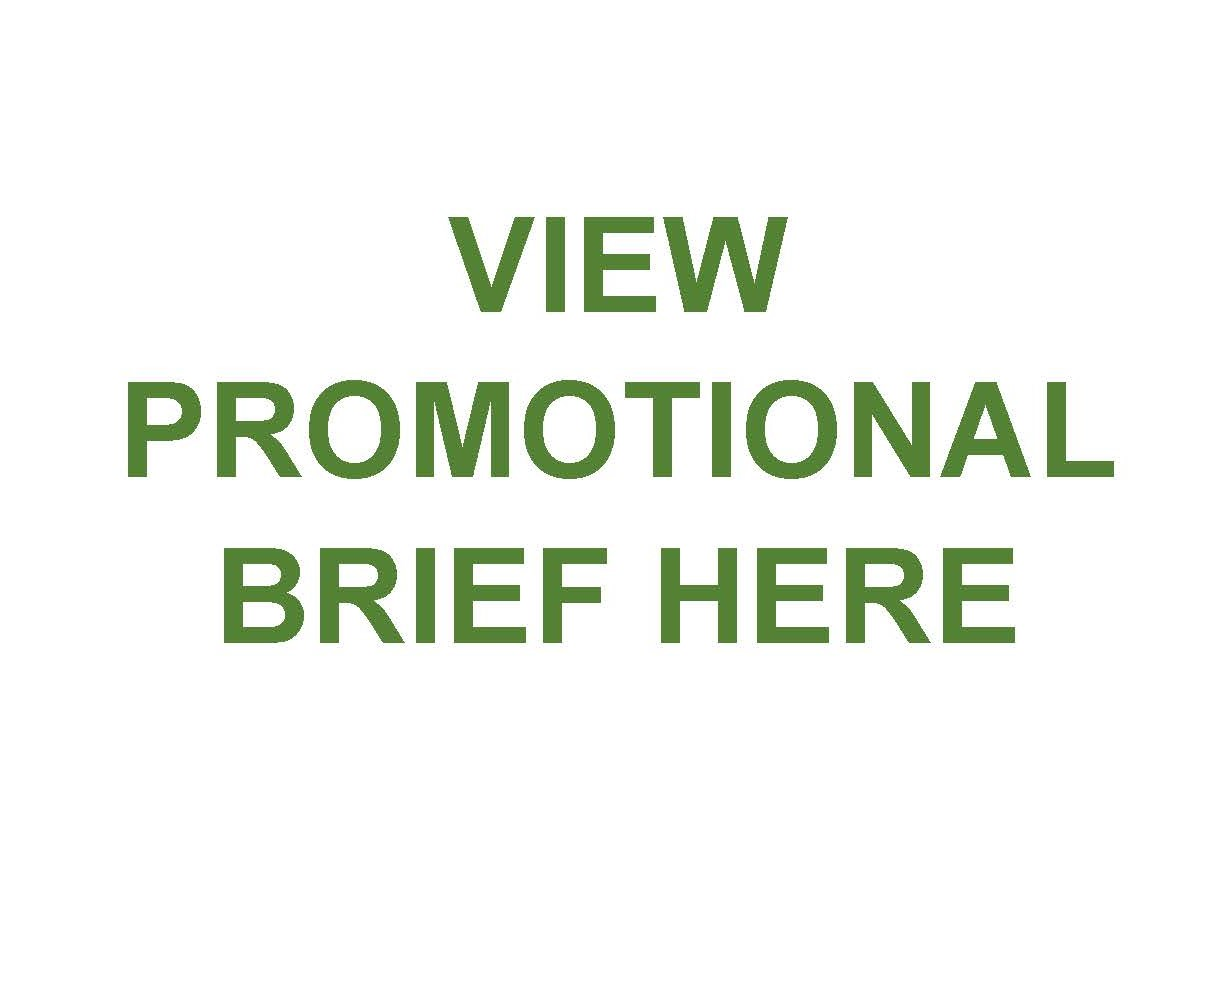 VIEW PROMOTIONAL BRIEF HERE final